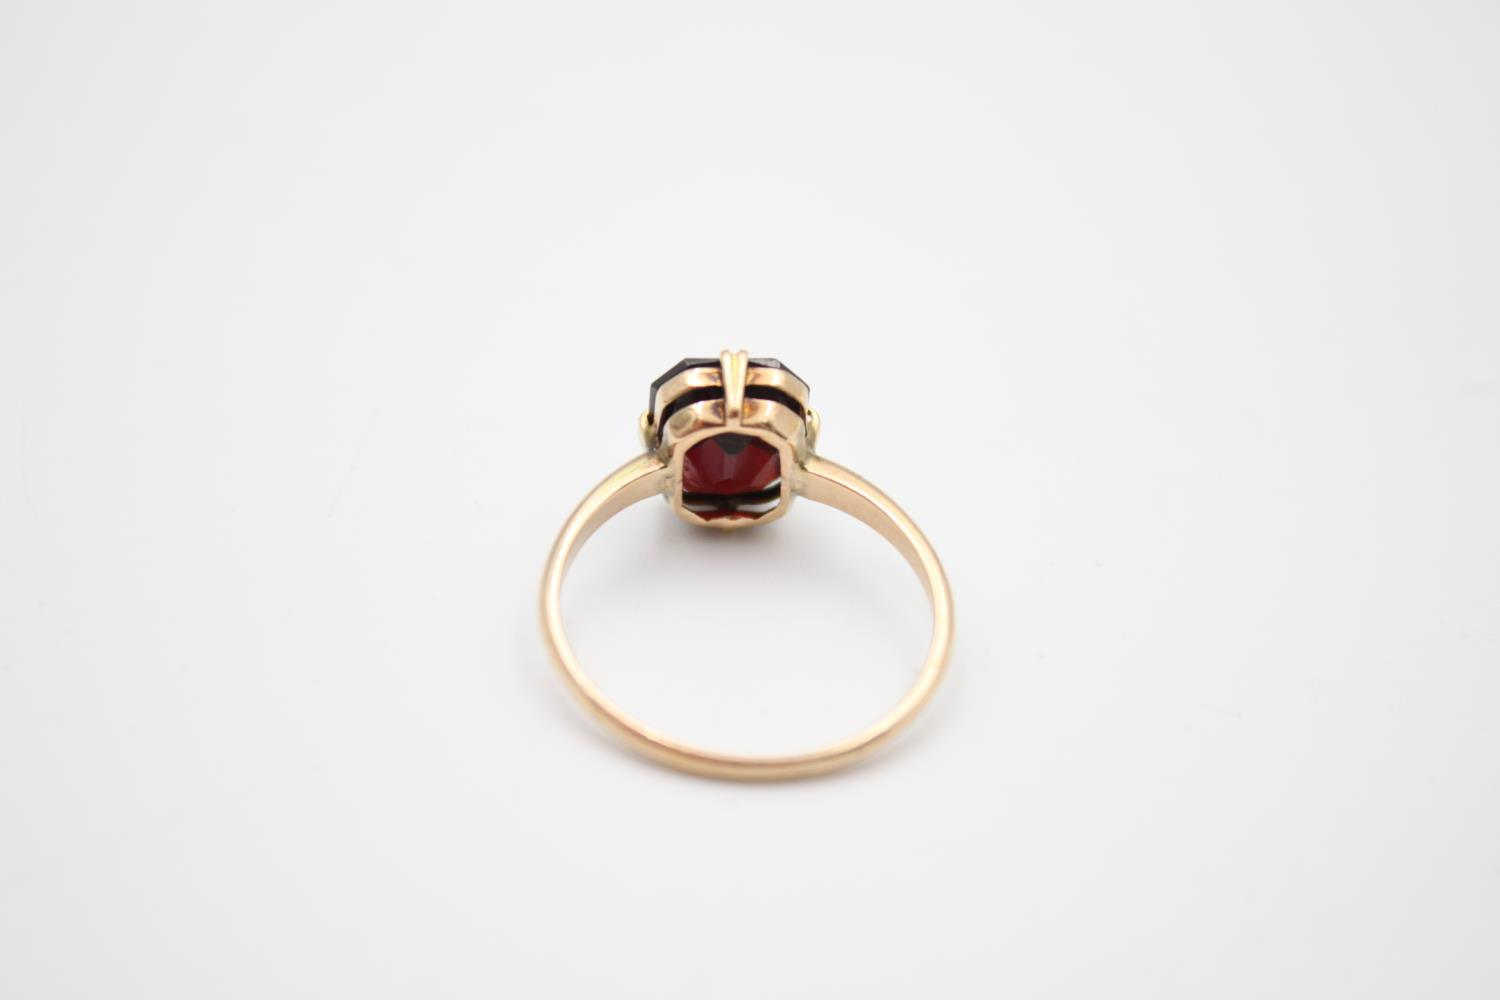 vintage 9ct gold garnet solitaire ring 2.1g Size O - Image 3 of 5